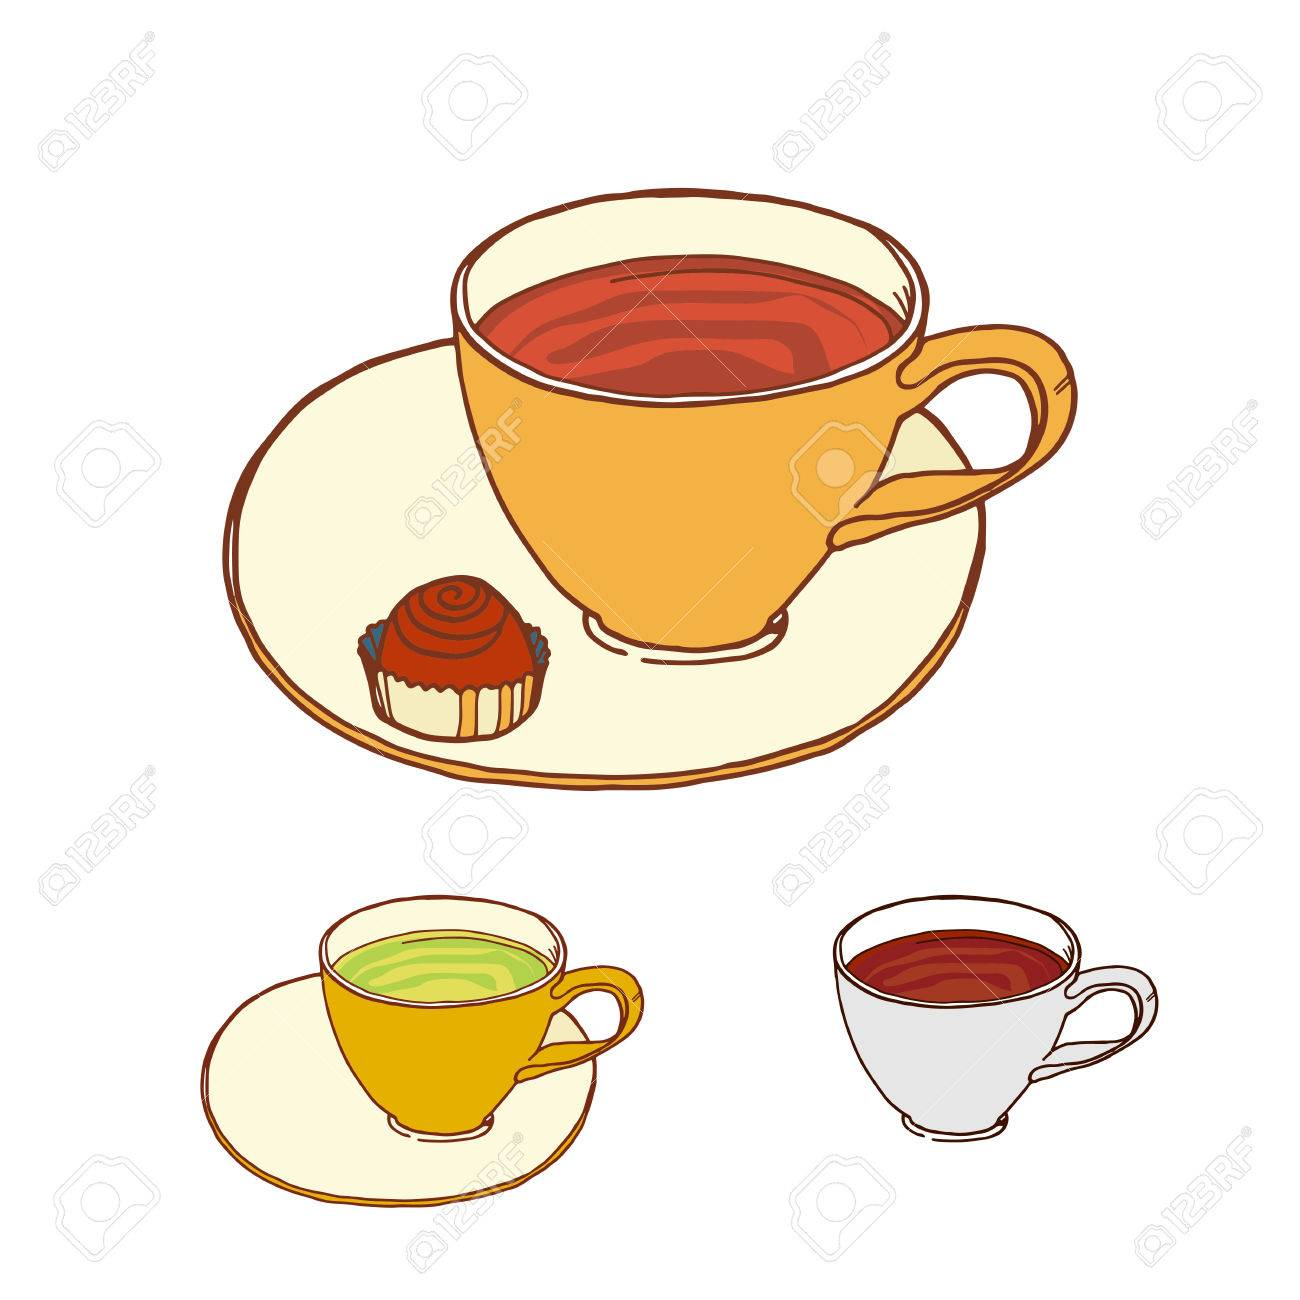 Coffee And Tea Cup With Candy At Saucer Vector Sketch Color Royalty Free Cliparts Vectors And Stock Illustration Image 46646899